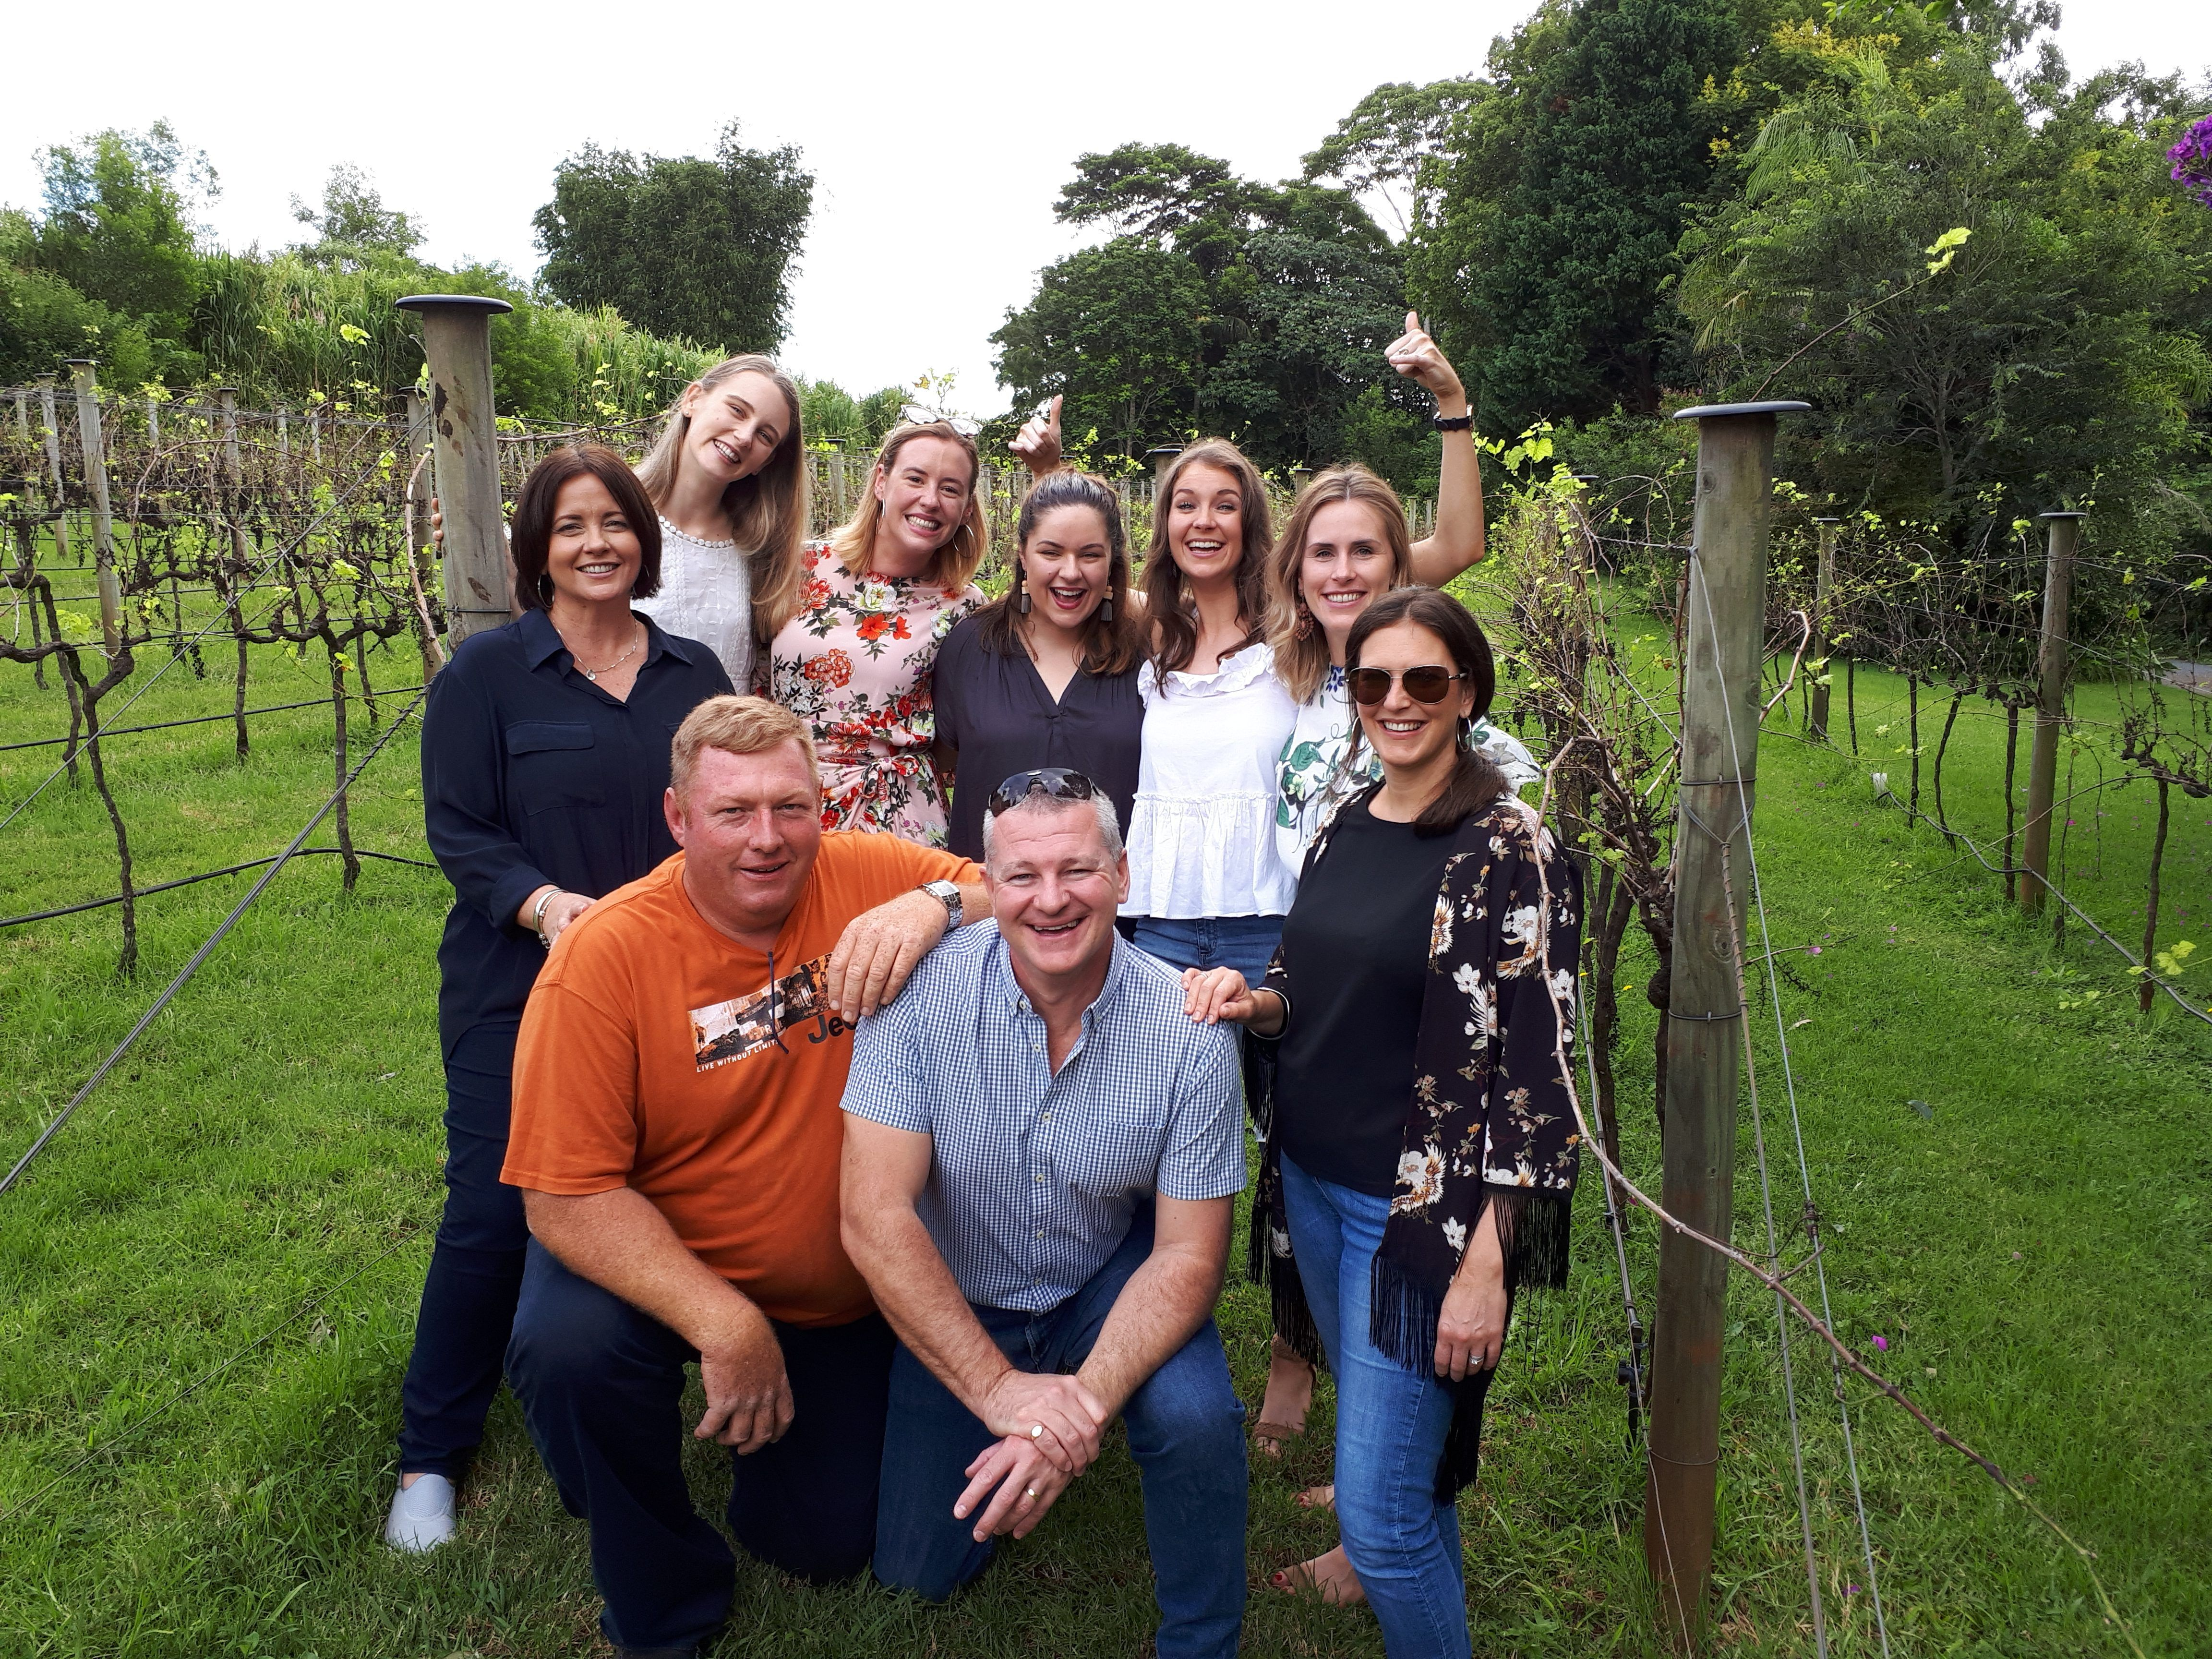 "These two groups of people came together on a Cork 'n Fork Tour on the weekend. The first group was a party of five lovely young ladies from Brisbane who originally all met at UQ during their studies ""a few"" years ago. The second group was two couples one of which are repeat offenders, having been with us four time now.  After introductions at the first stop and some info on how to taste wines to enhance the experience of the day, they melded as if they had known each other f"